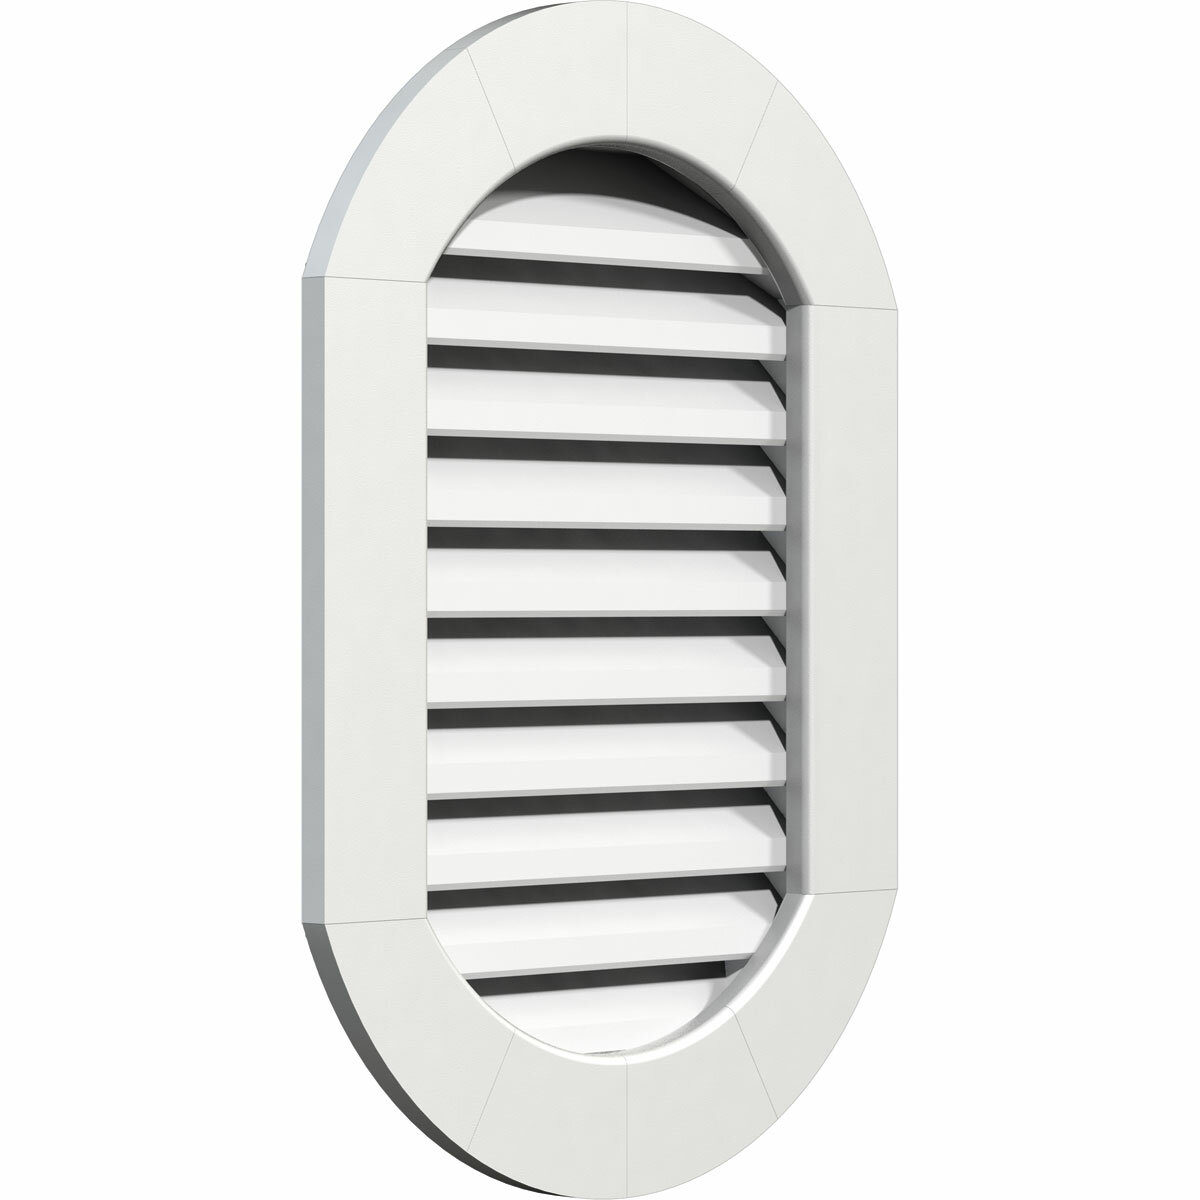 Ekena Millwork Pvc Vertical Round Ended Gable Vent With Flat Trim Frame In White Wayfair